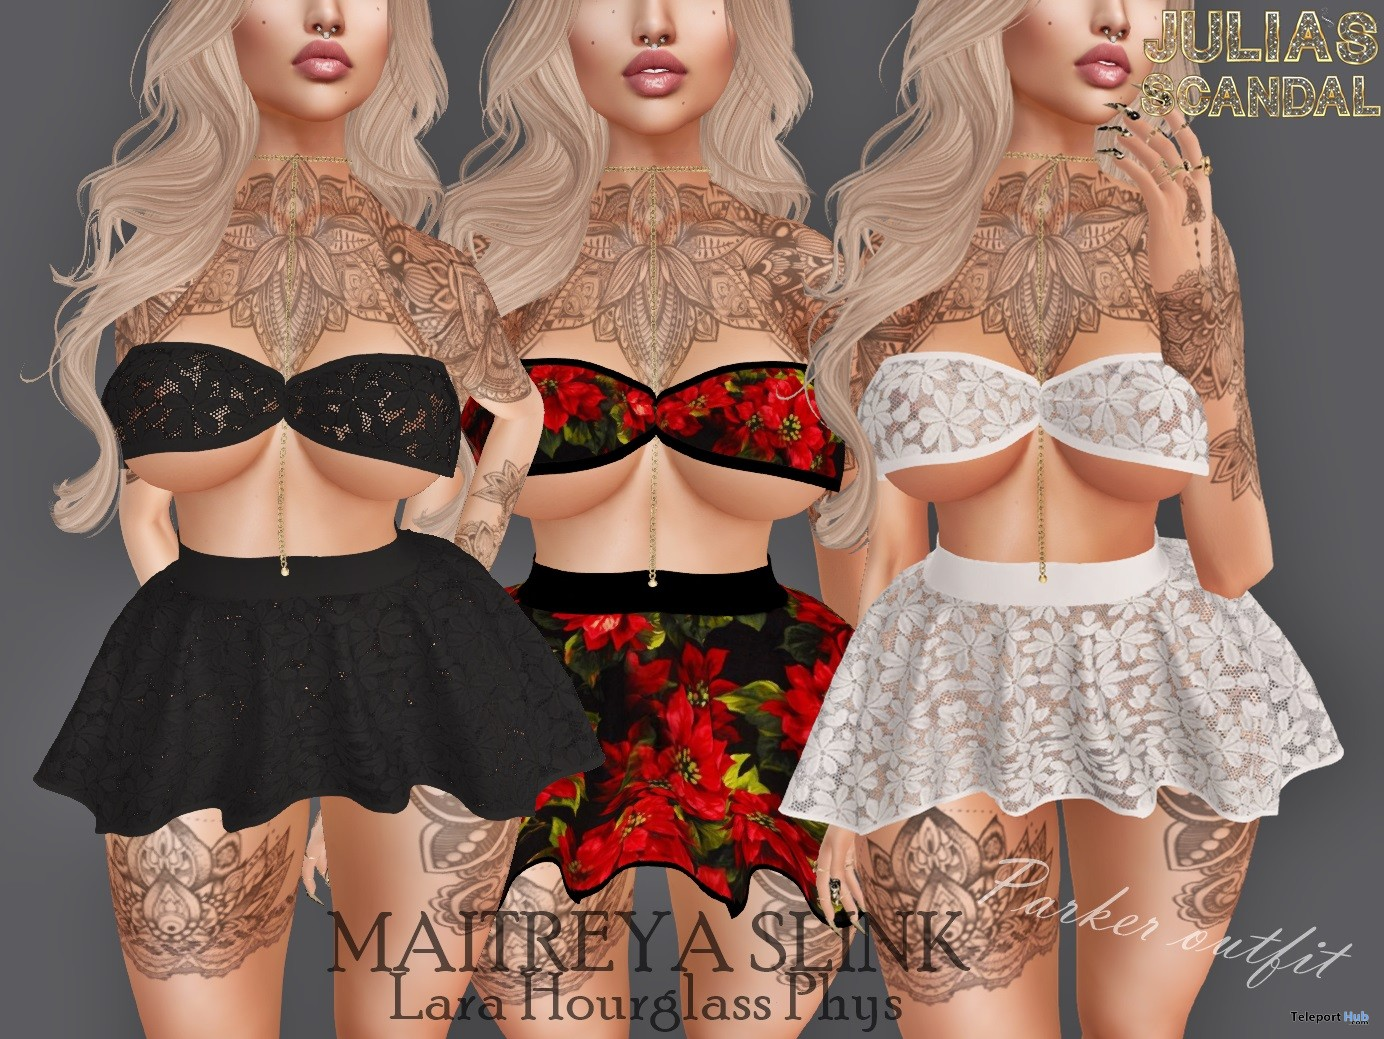 Parker Top & Skirt May 2018 Group Gift by Julia's Scandal - Teleport Hub - teleporthub.com